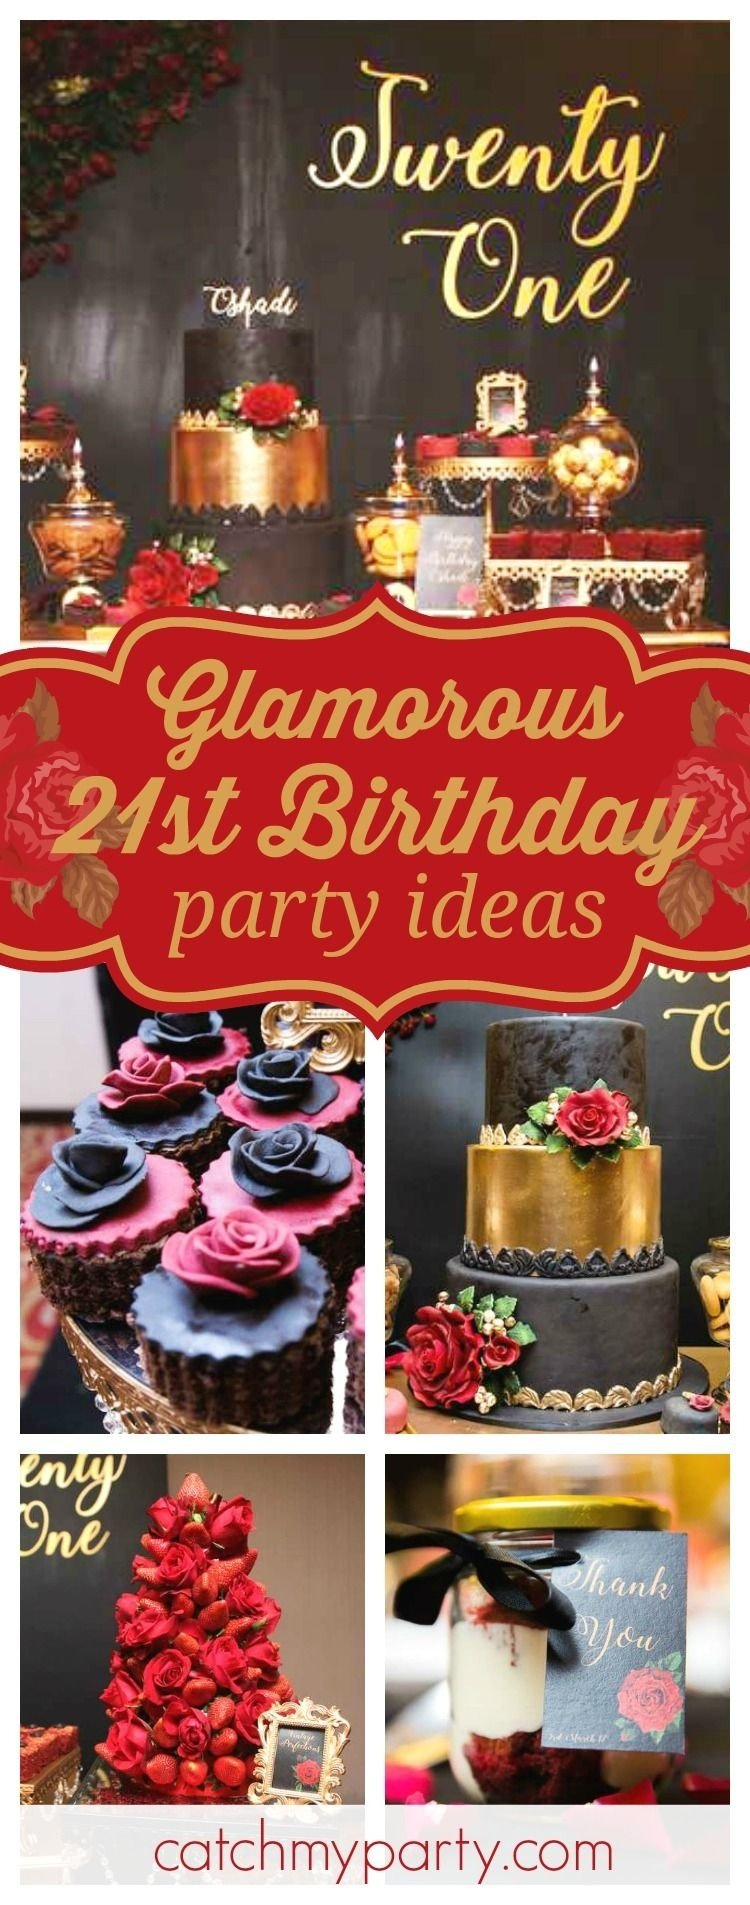 10 Fabulous 29Th Birthday Ideas For Her themes birthday 29th birthday party ideas for him with 29th 2020